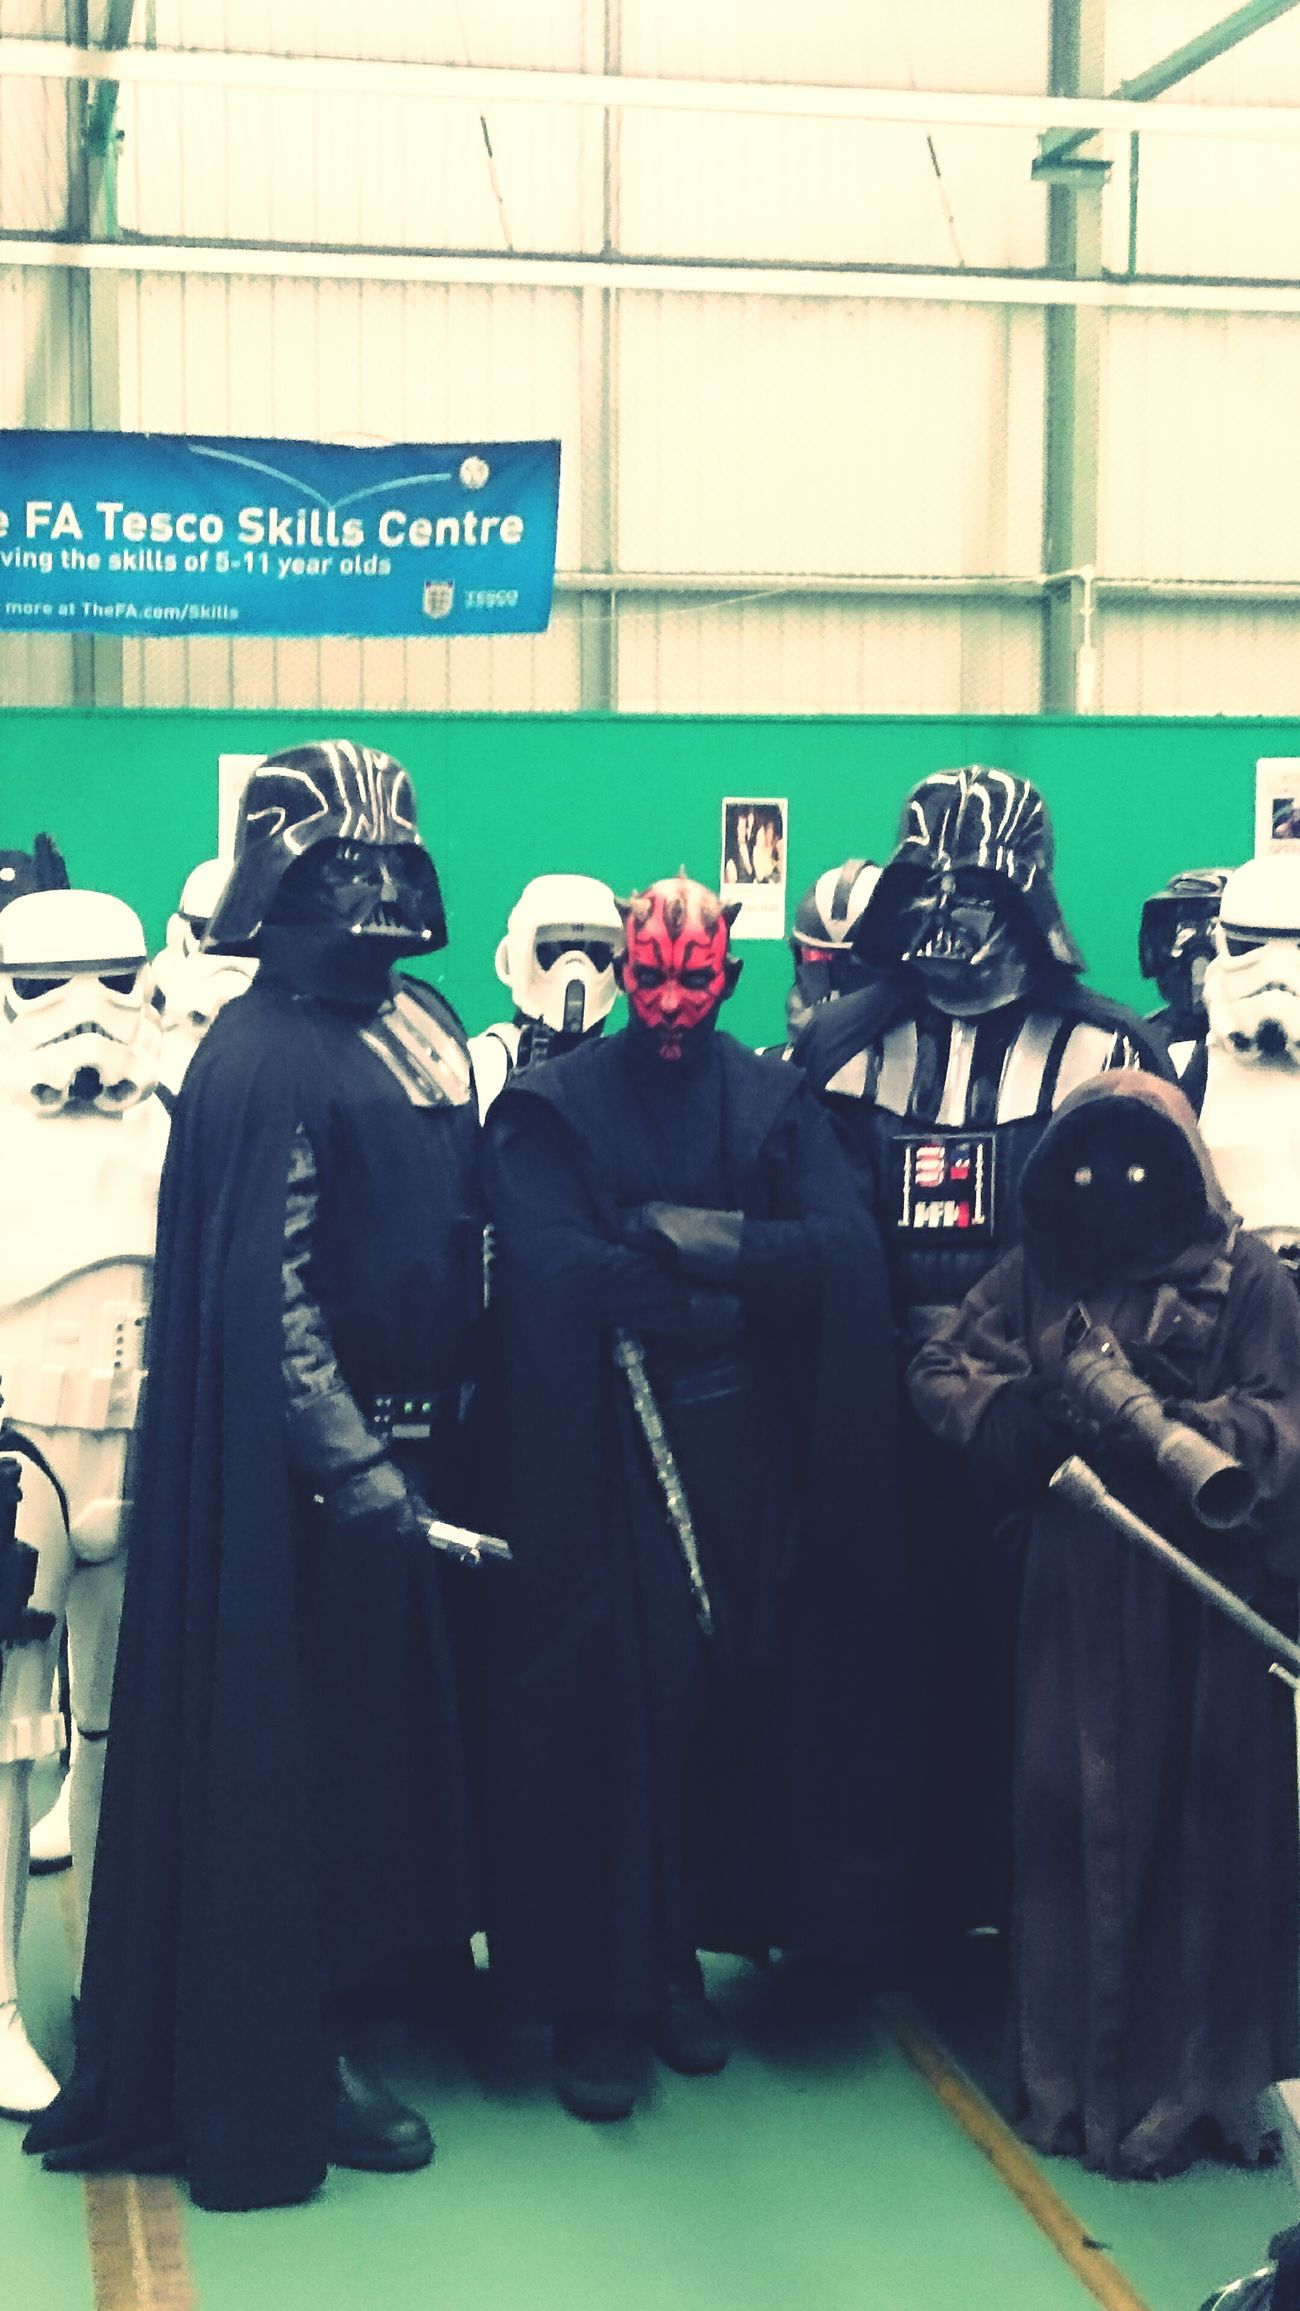 Peoplephotography Darth Vader Darth Maul Comiccon